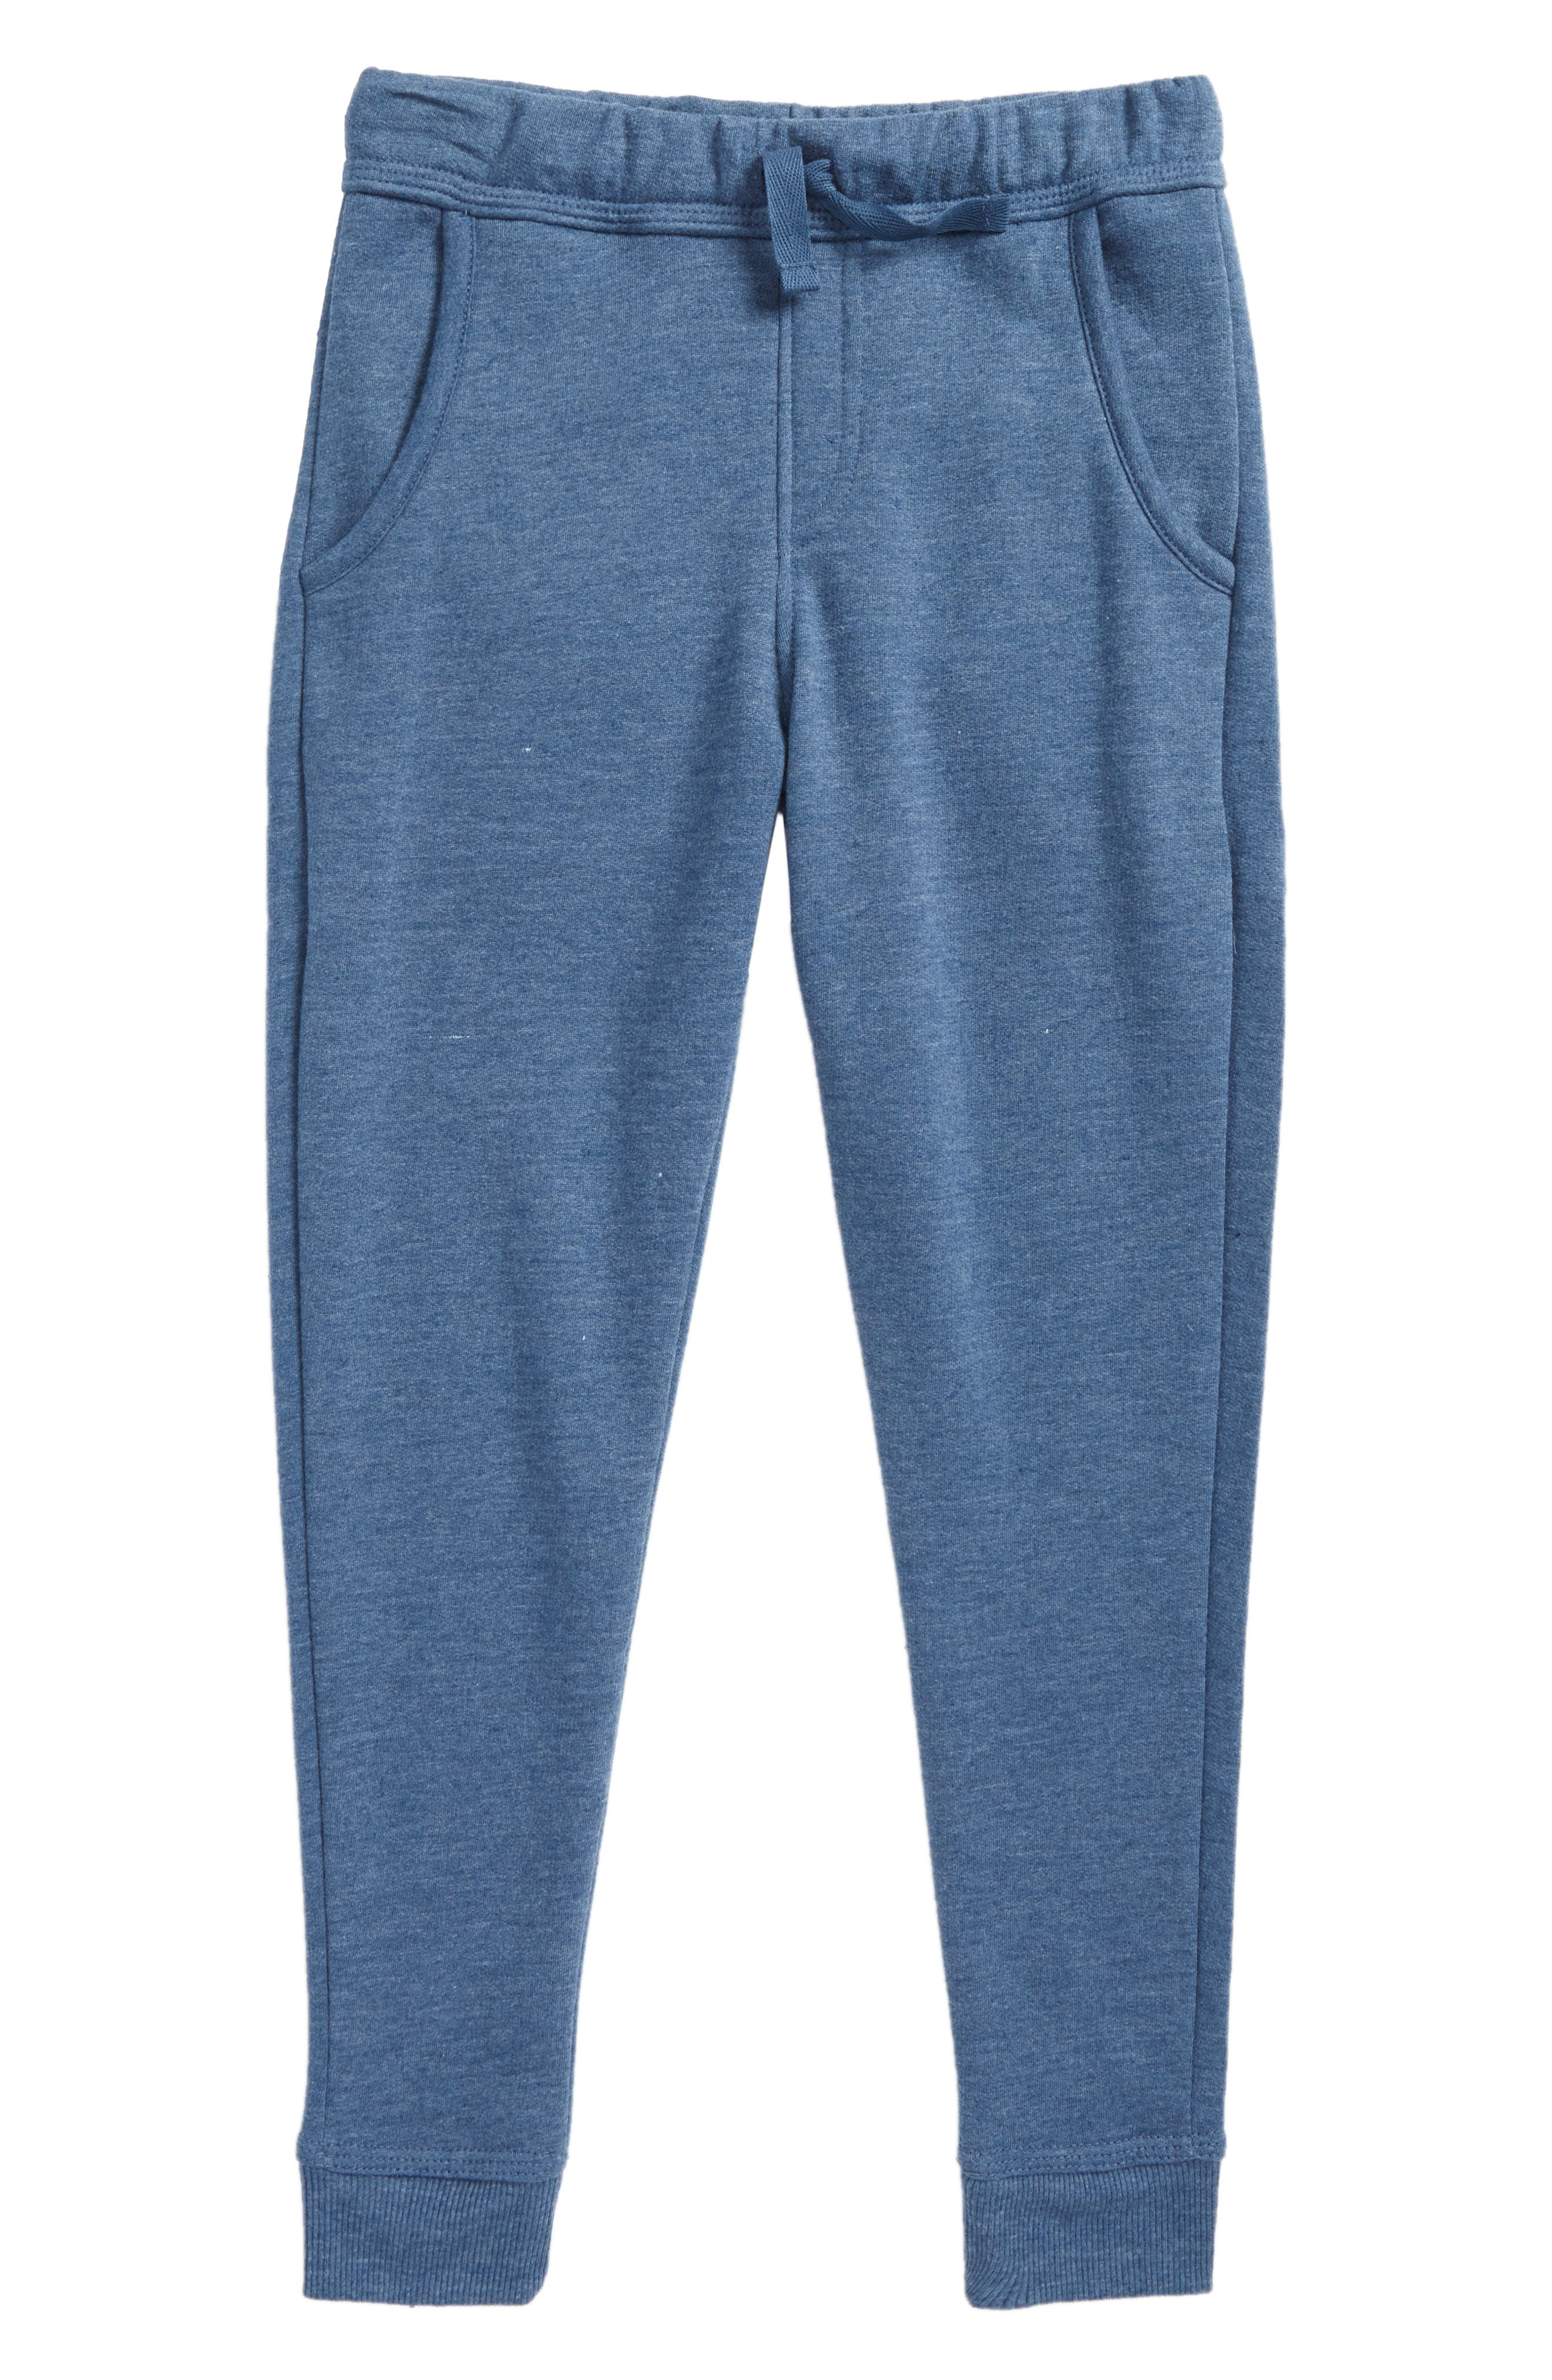 Tucker + Tate Knit Jogger Pants (Toddler Boys & Little Boys)